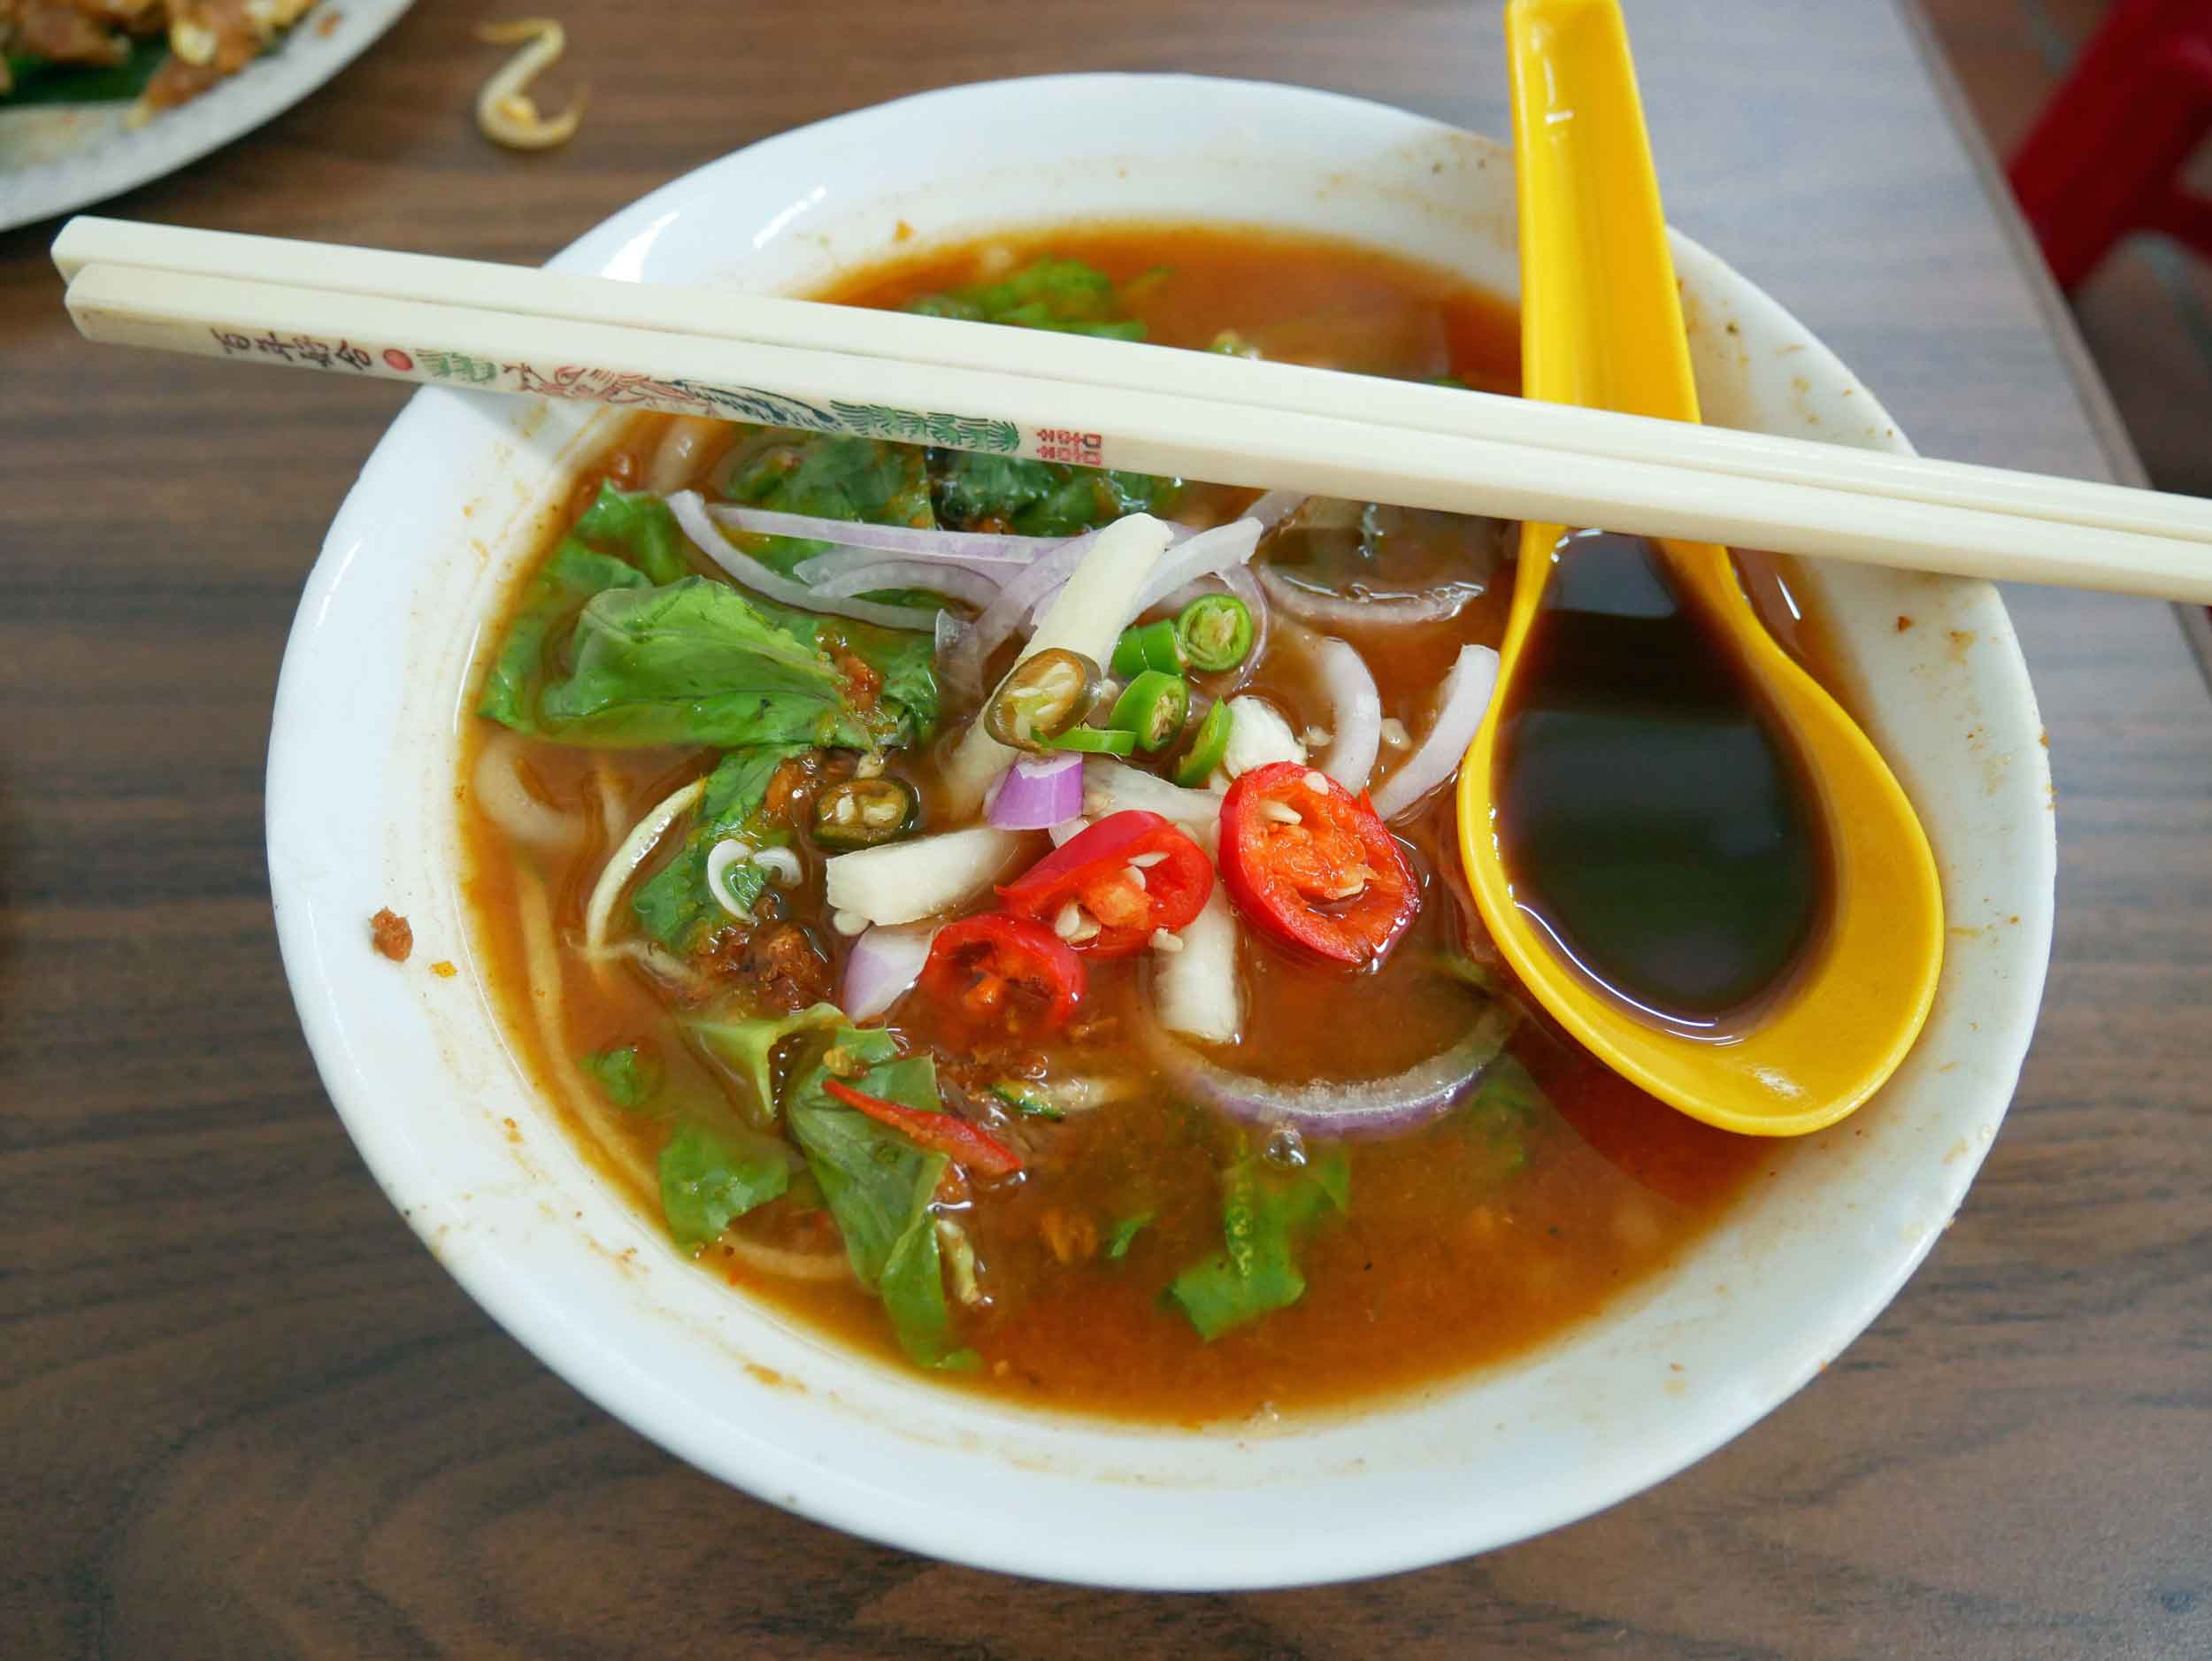 We slurped our way through a bowl of piping hot  laksa , a spicy noodle soup and another specialty.